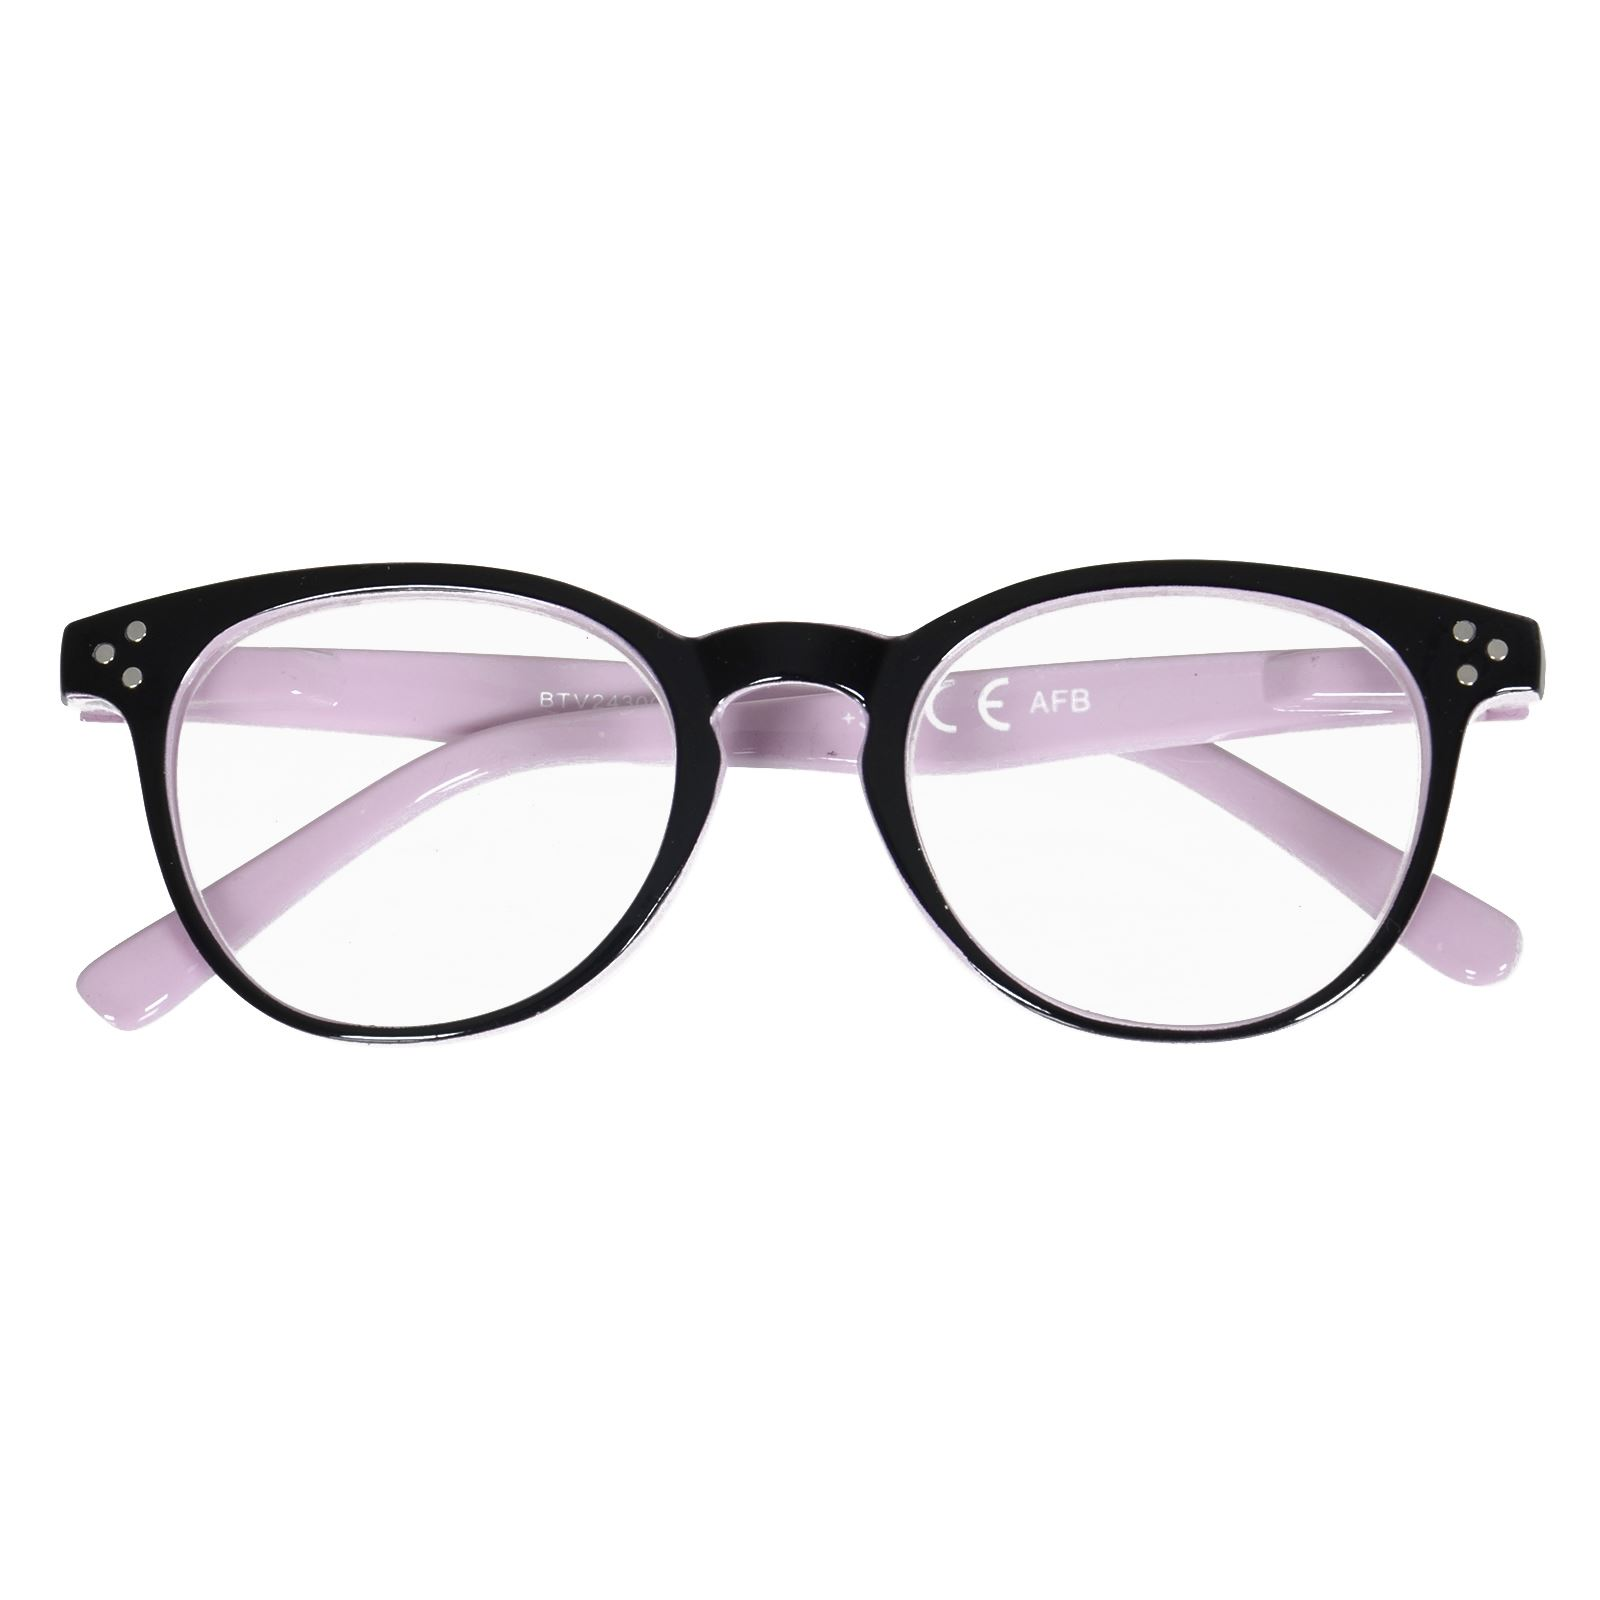 09eb6d161a Reading Glasses With Case Betaview Mens Womens Spectacles Plastic ...